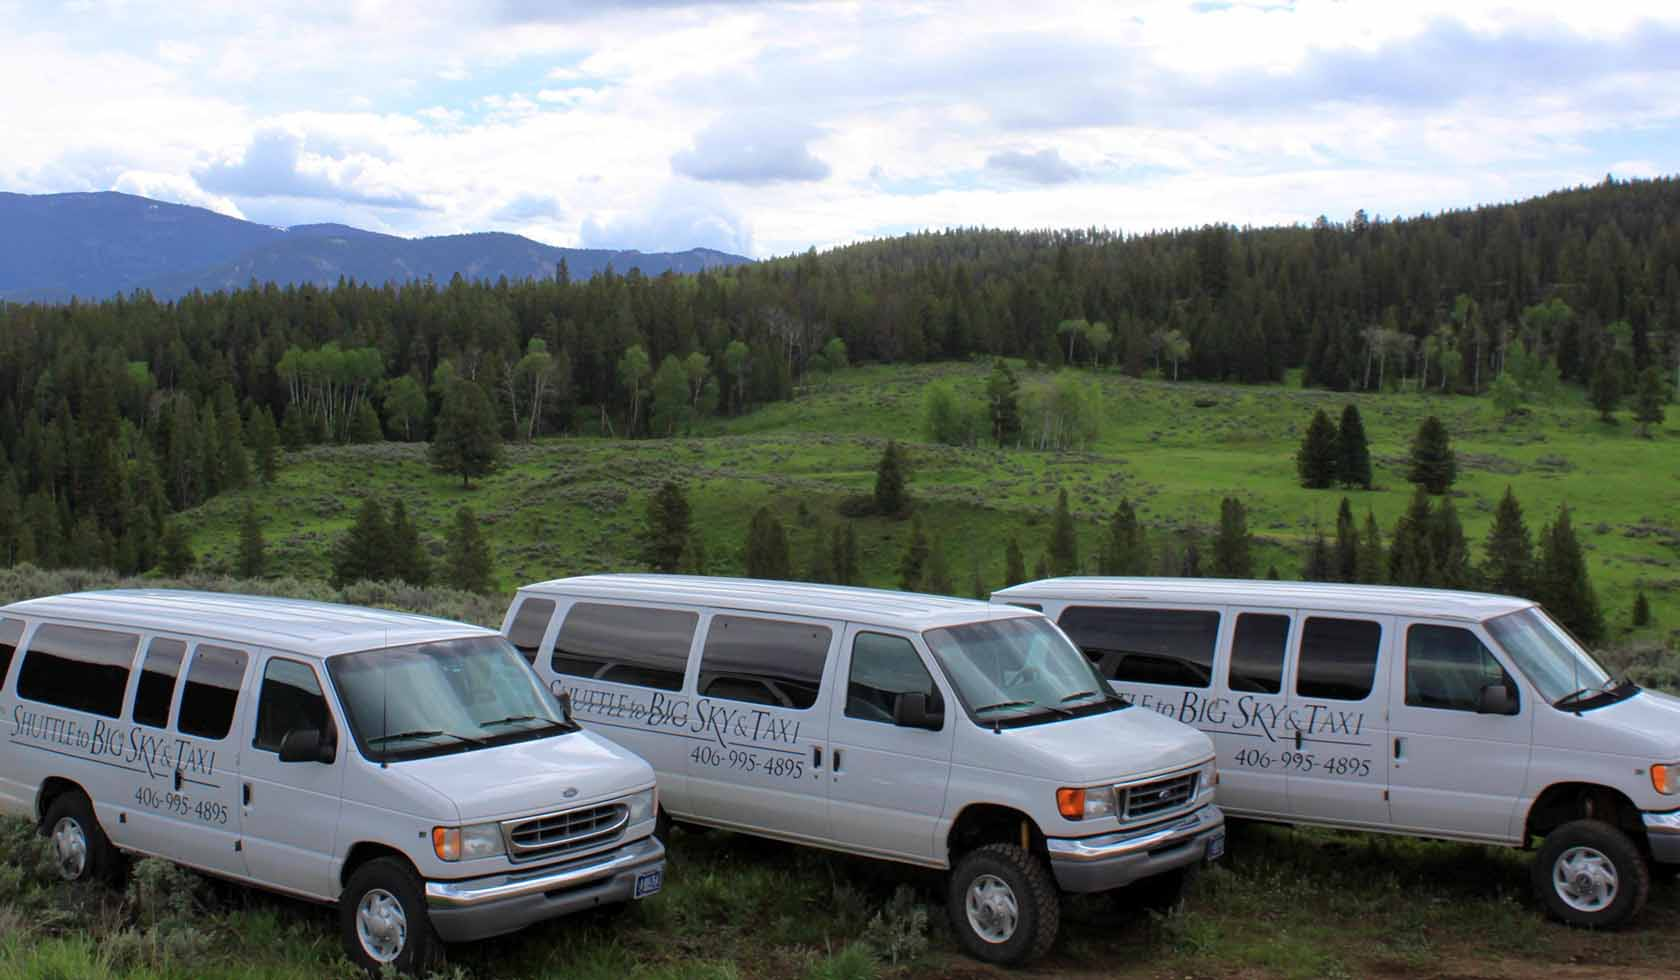 Shuttle to Big Sky and Taxi profile image